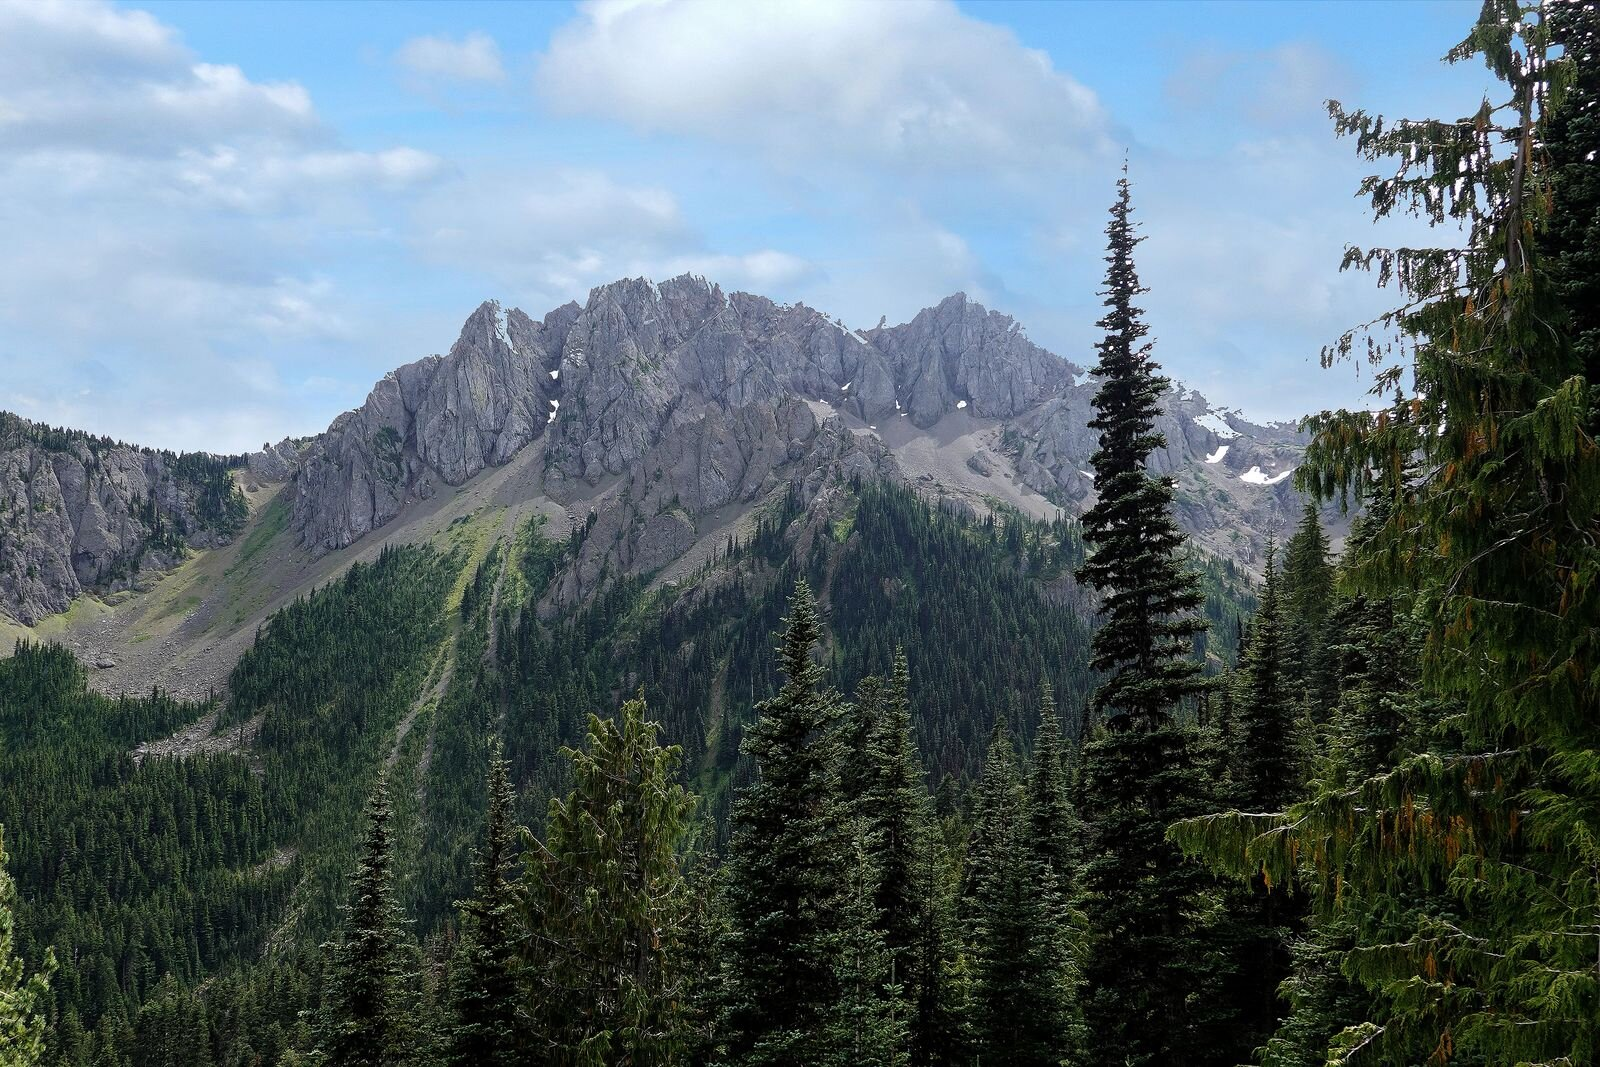 Some of the rugged peaks you see along the trail